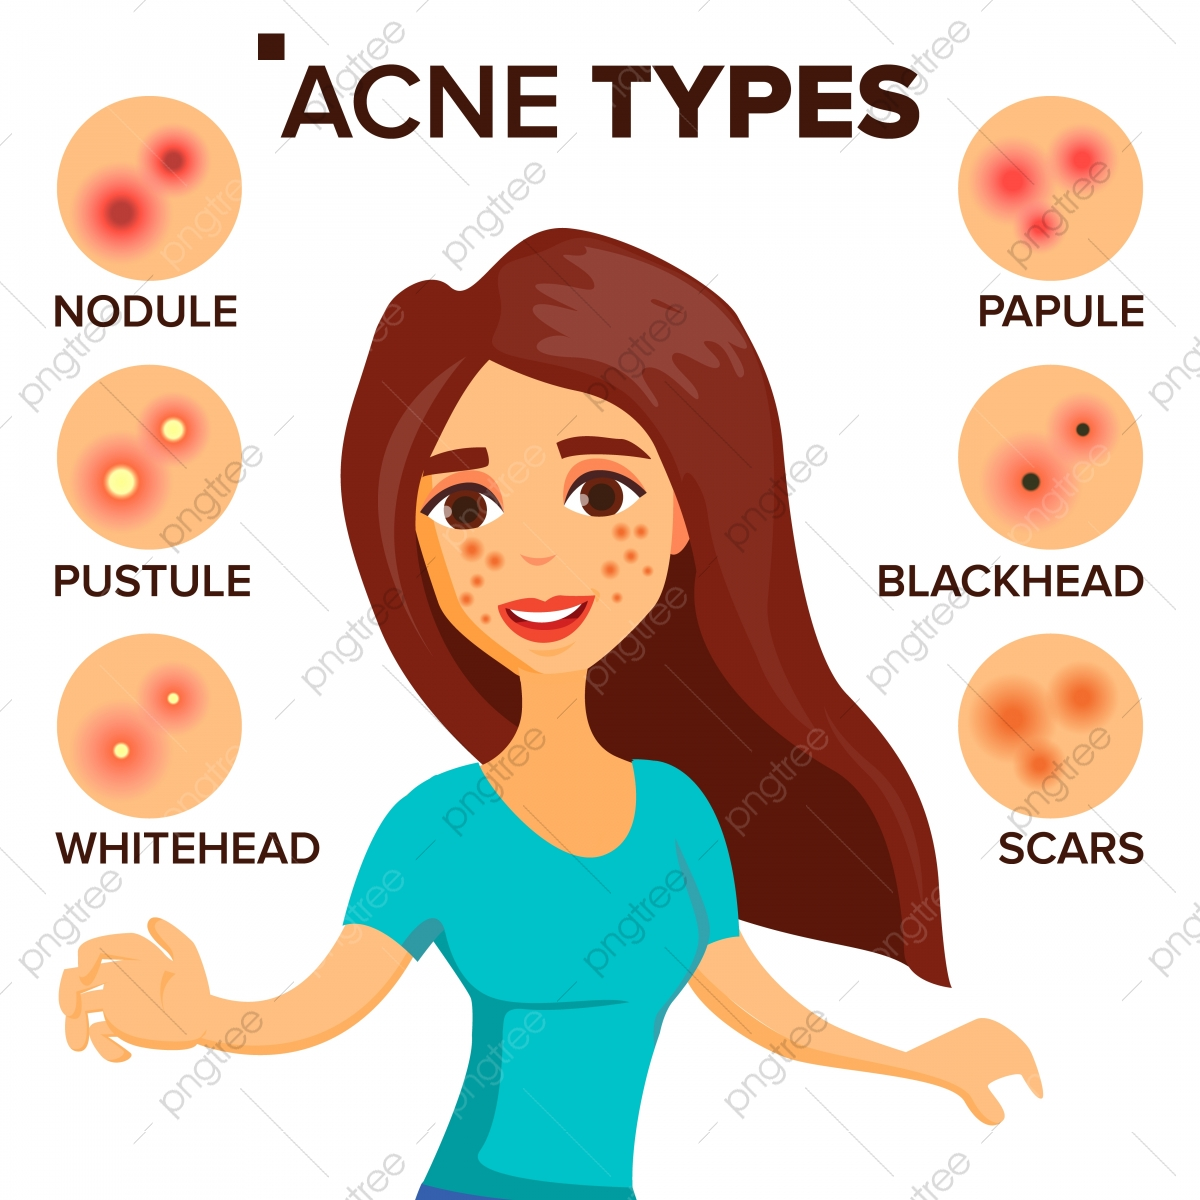 Acne Types Vector Girl With Acne Skin Care Treatment Healthy Nodule Whitehead Isolated Flat Cartoon Character Illustration Girl Female Acne Png And Vector With Transparent Background For Free Download